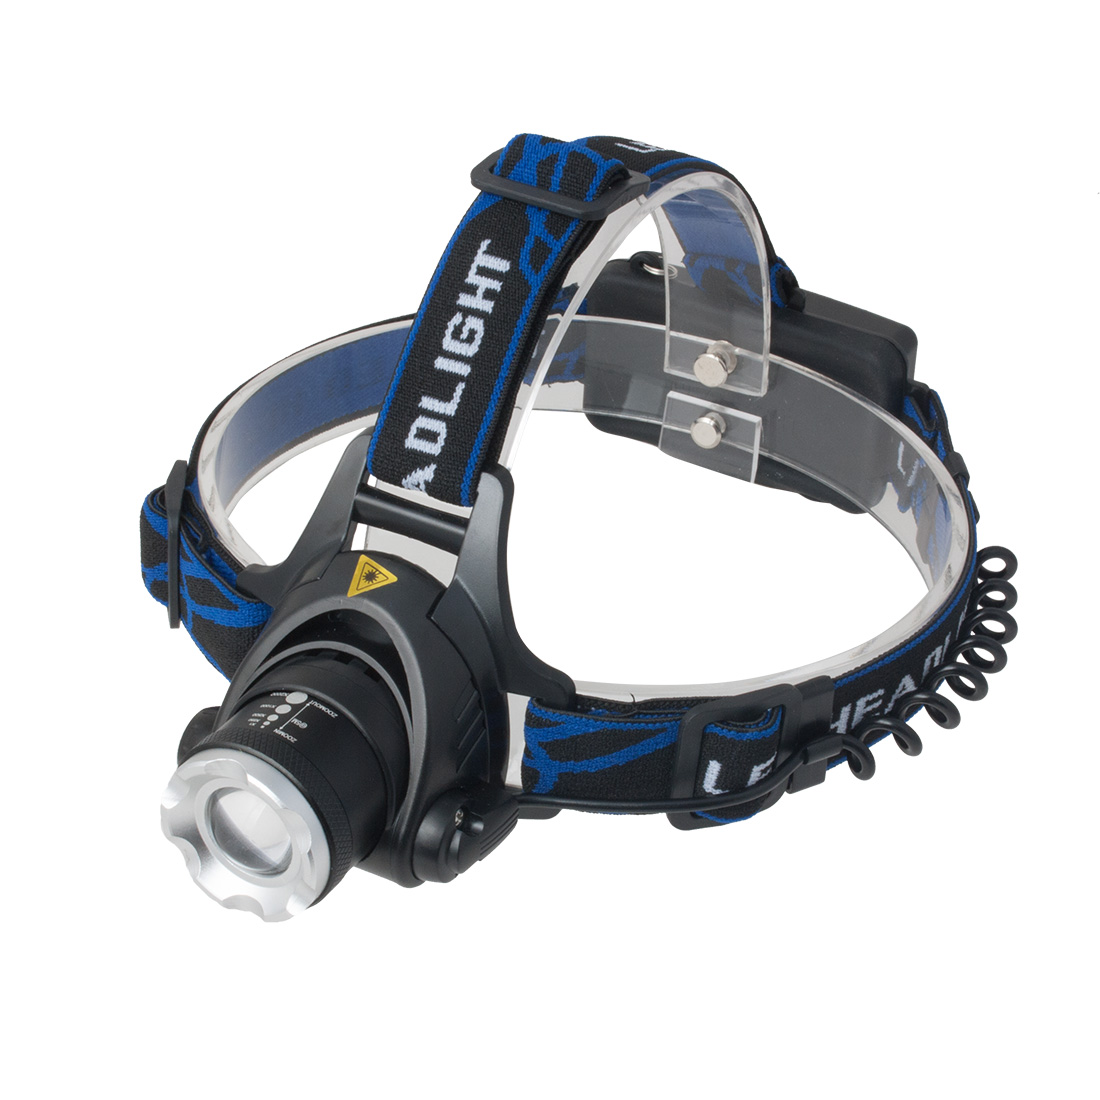 Scretchable Zoom 350 Lumens LED Headlamp Fishing Camping Head Light Super Bright Torch Lamp